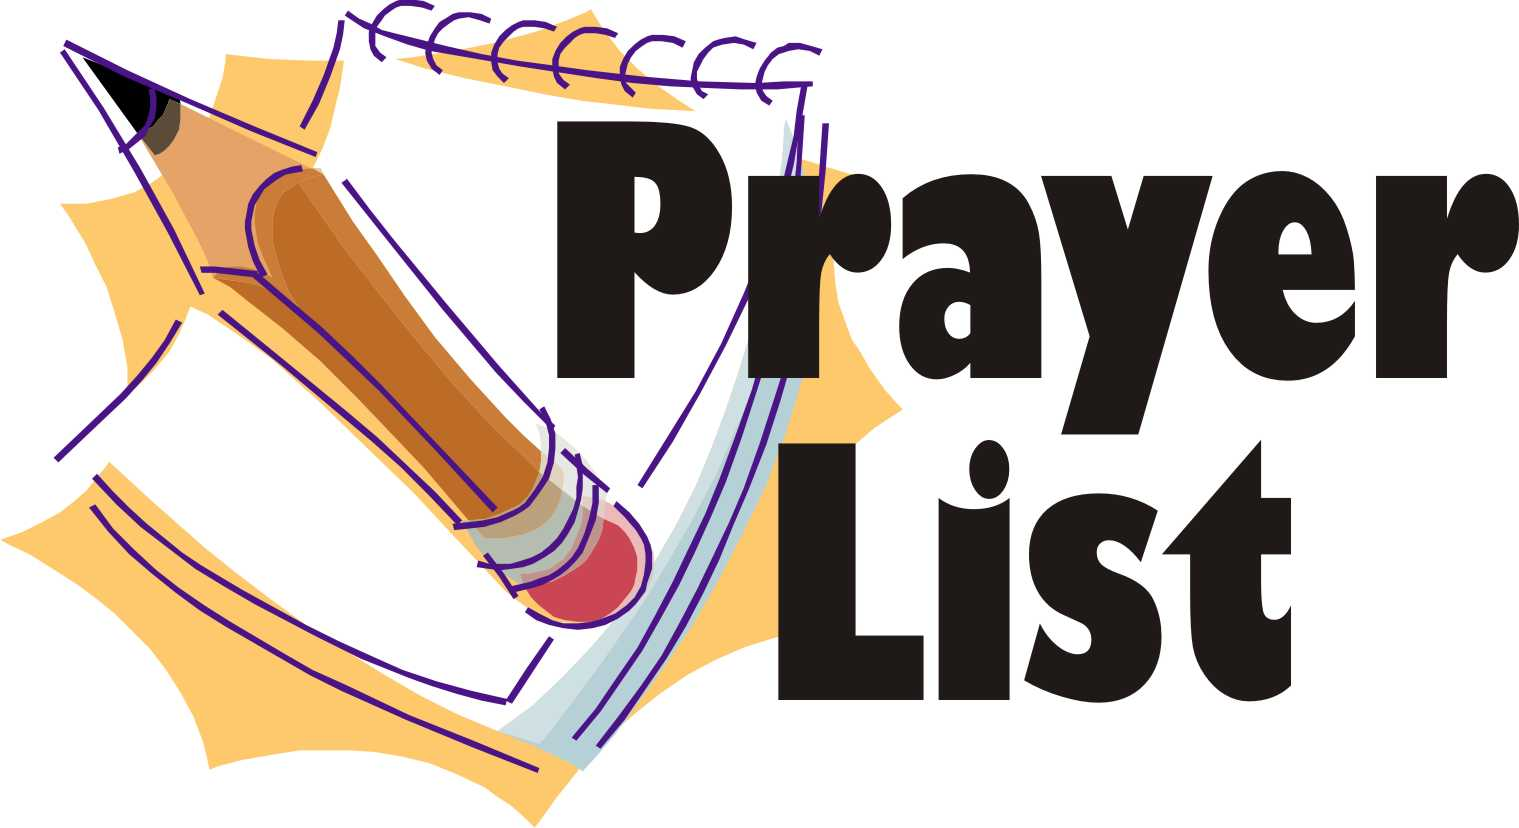 Peace clipart prayer group Free Art  Download on